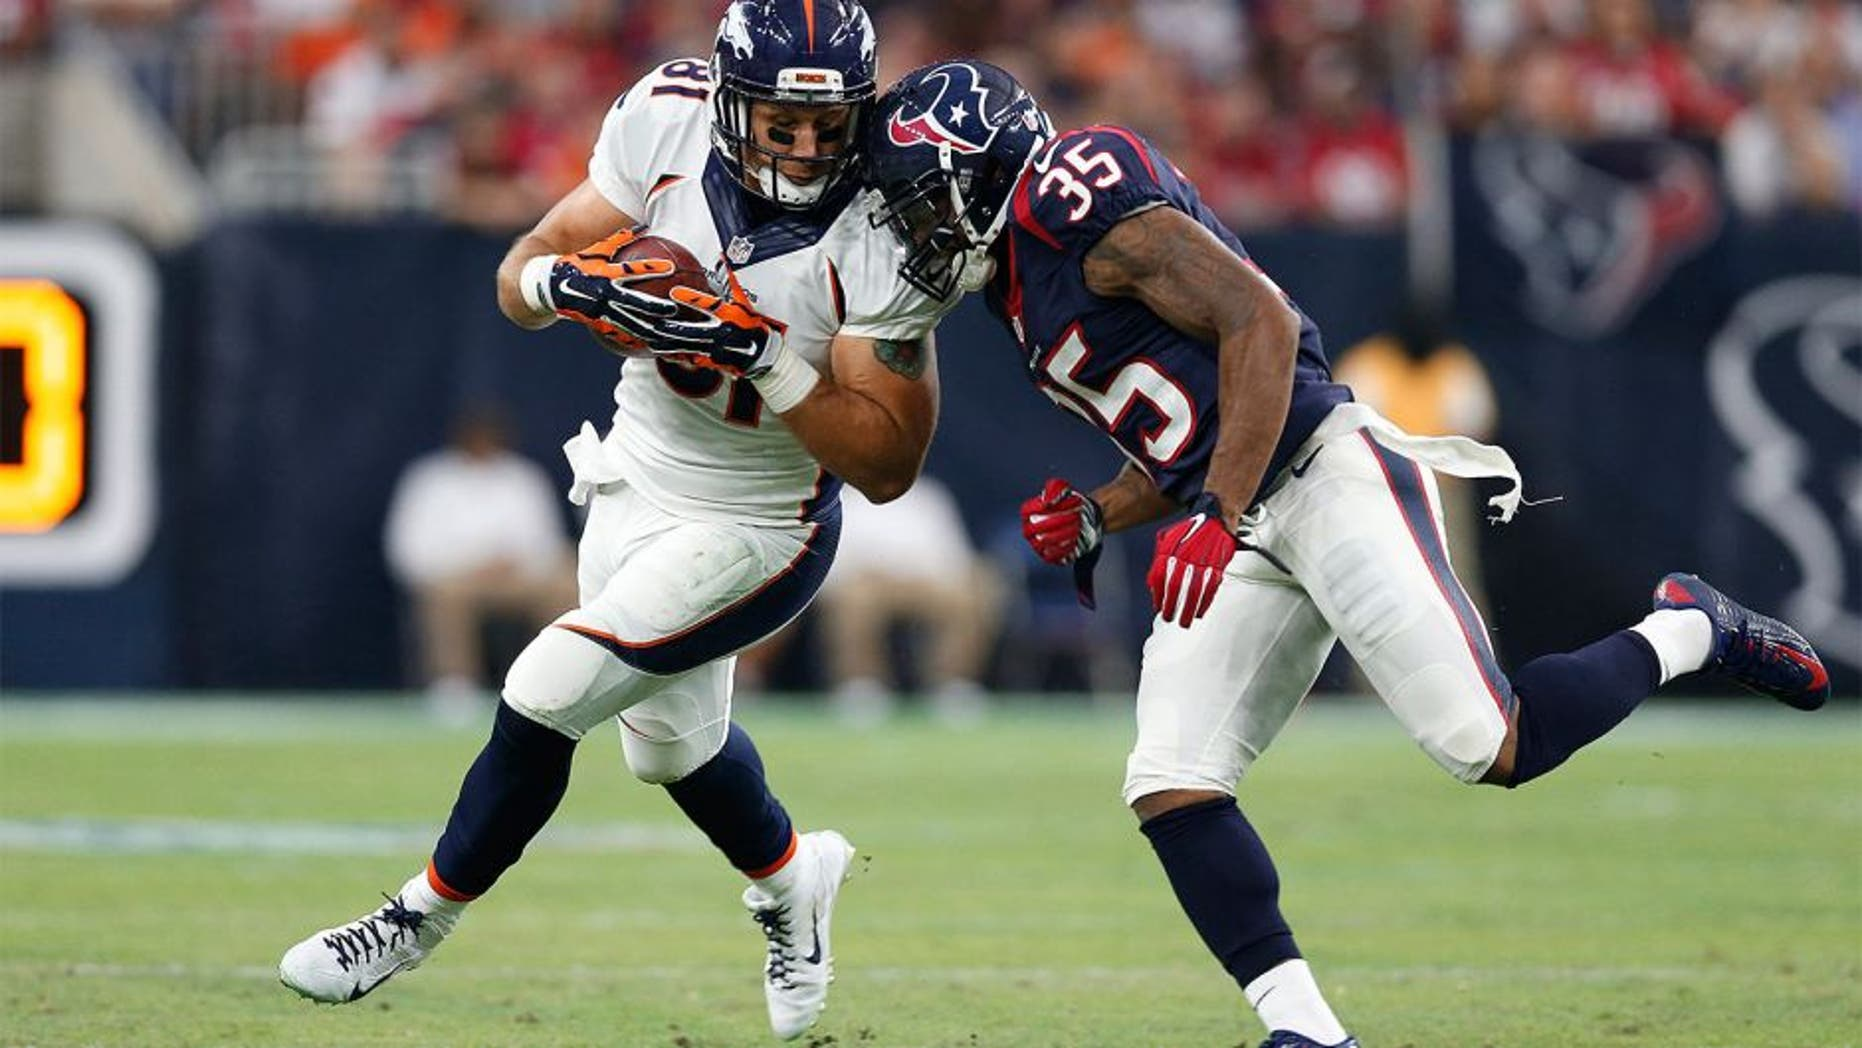 Aug 22, 2015; Houston, TX, USA; Denver Broncos tight end Owen Daniels (81) is tackled after a reception by Houston Texans safety Eddie Pleasant (35) at NRG Stadium. Mandatory Credit: Matthew Emmons-USA TODAY Sports